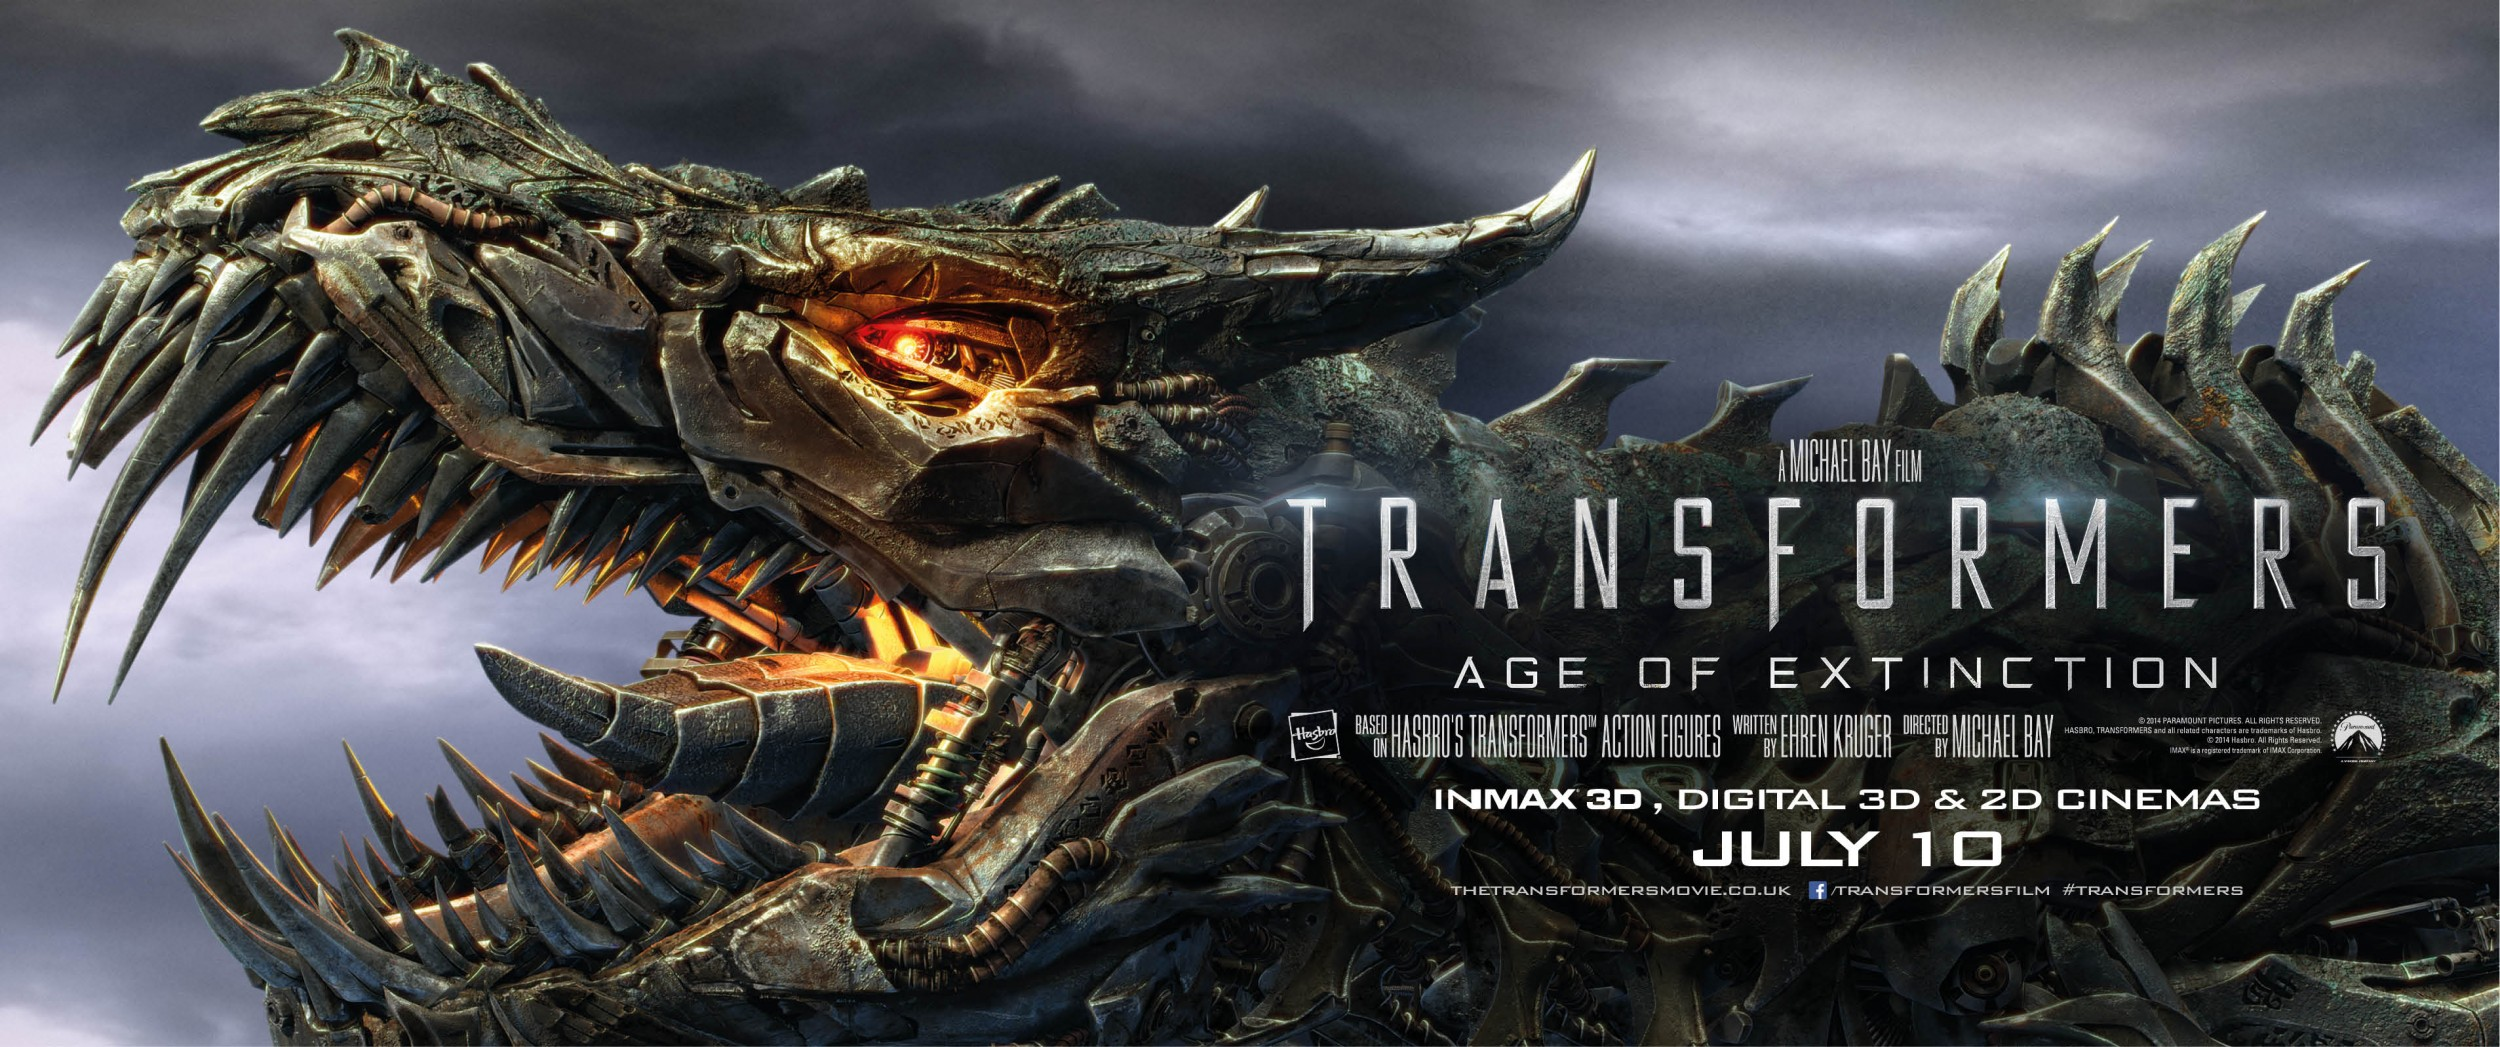 Transformers Age of Extinction-Official Poster Banner PROMO XXLG-14MAIO2014